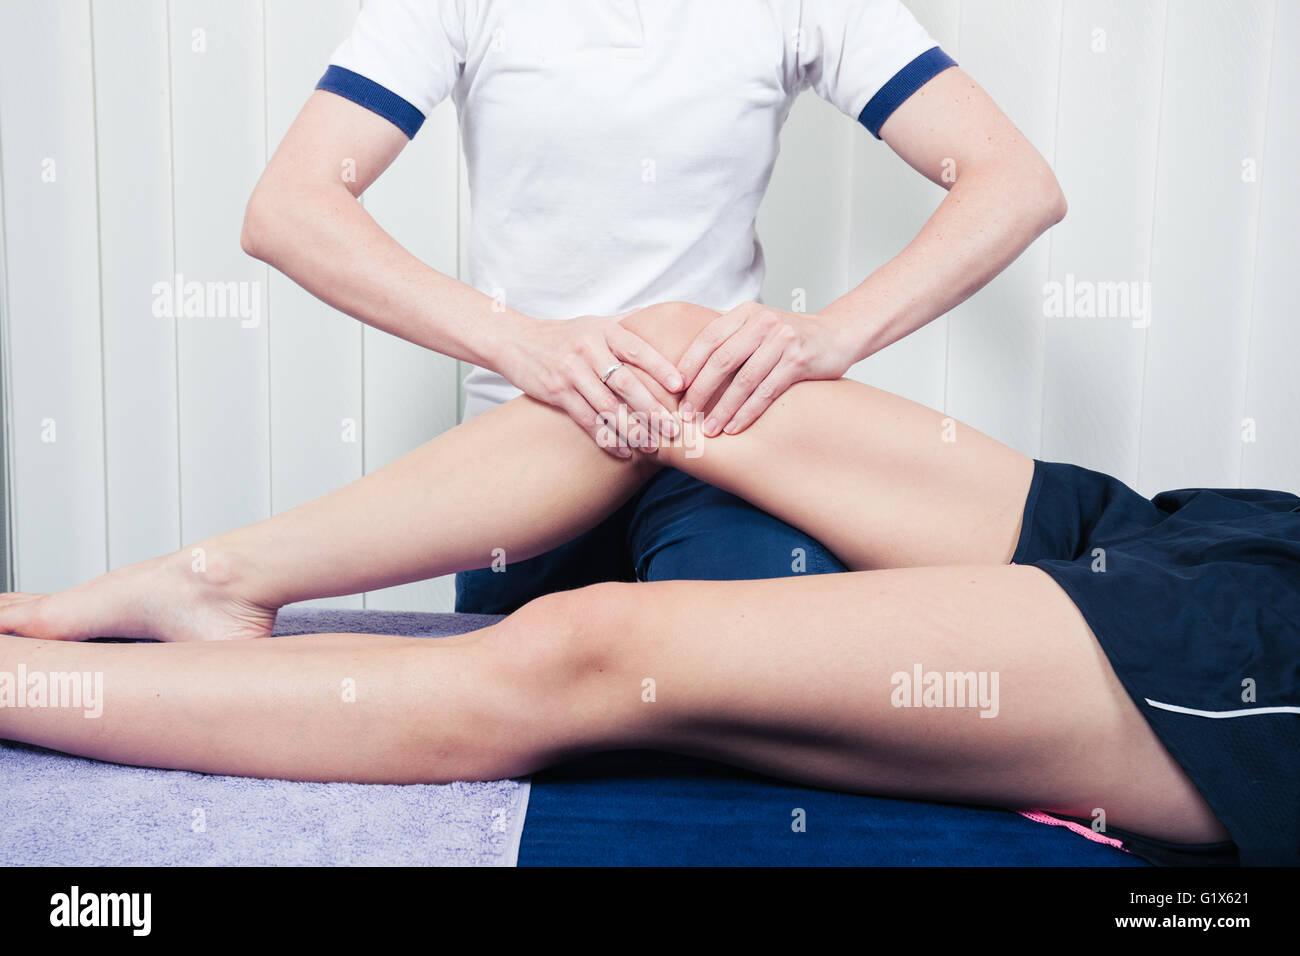 A physiotherapist is treating a patient's knee - Stock Image